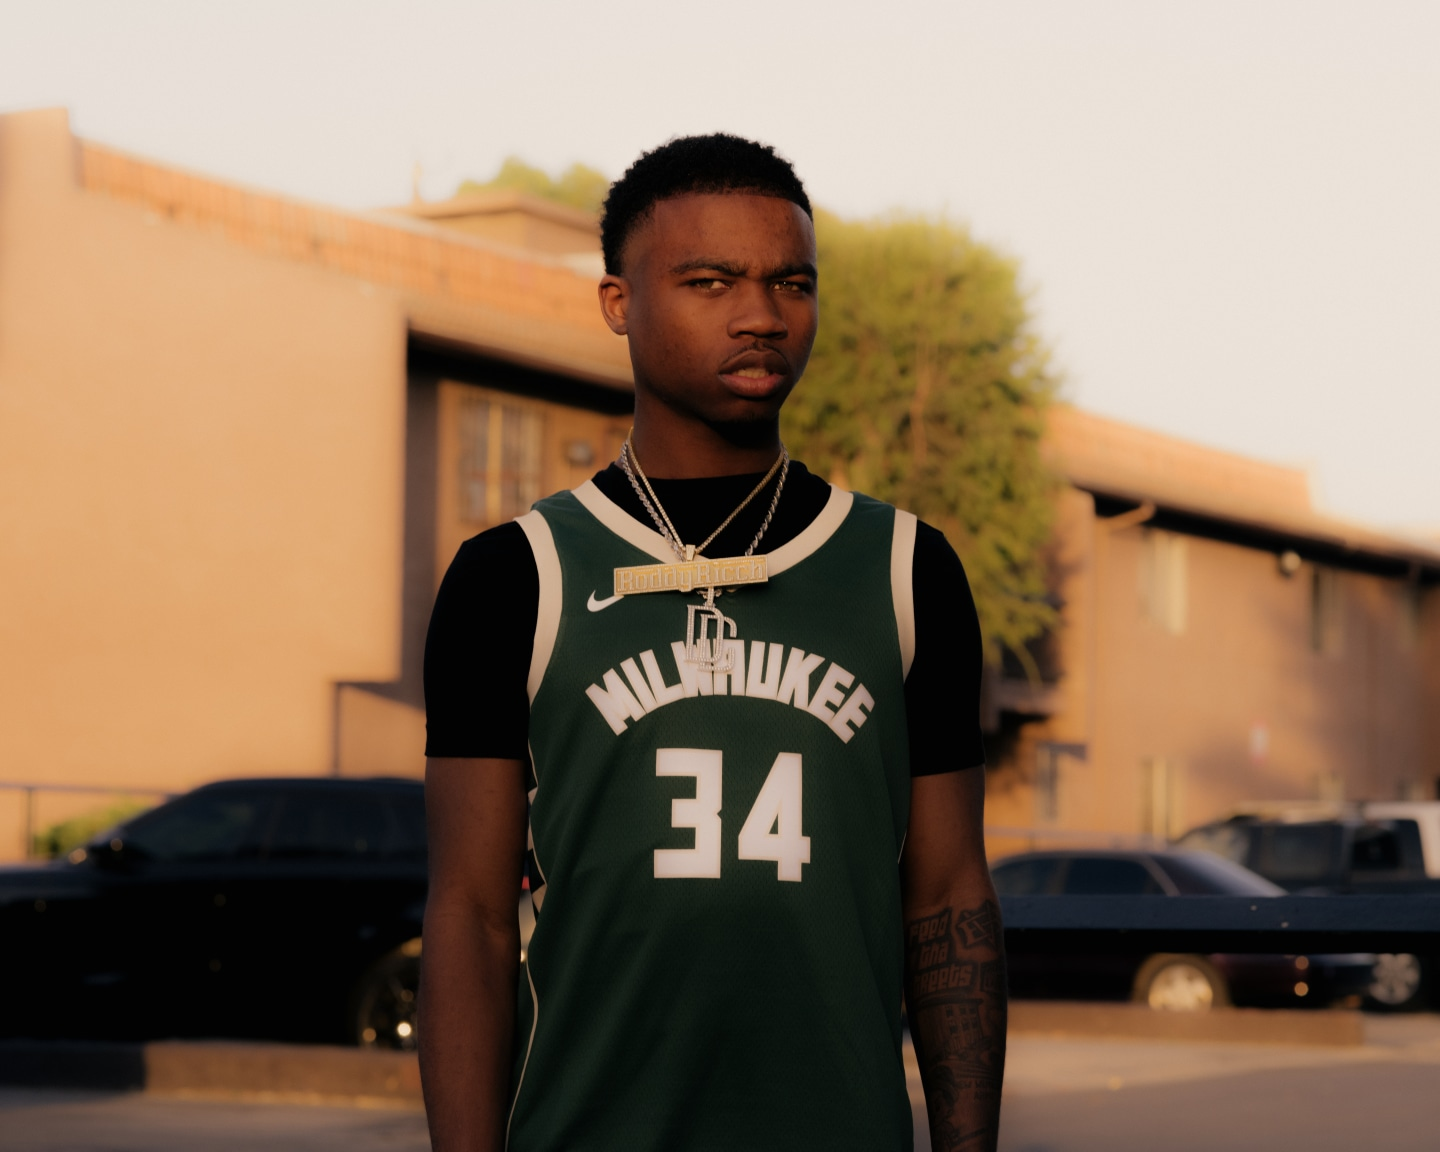 Roddy Ricch makes soulful anthems for overcoming